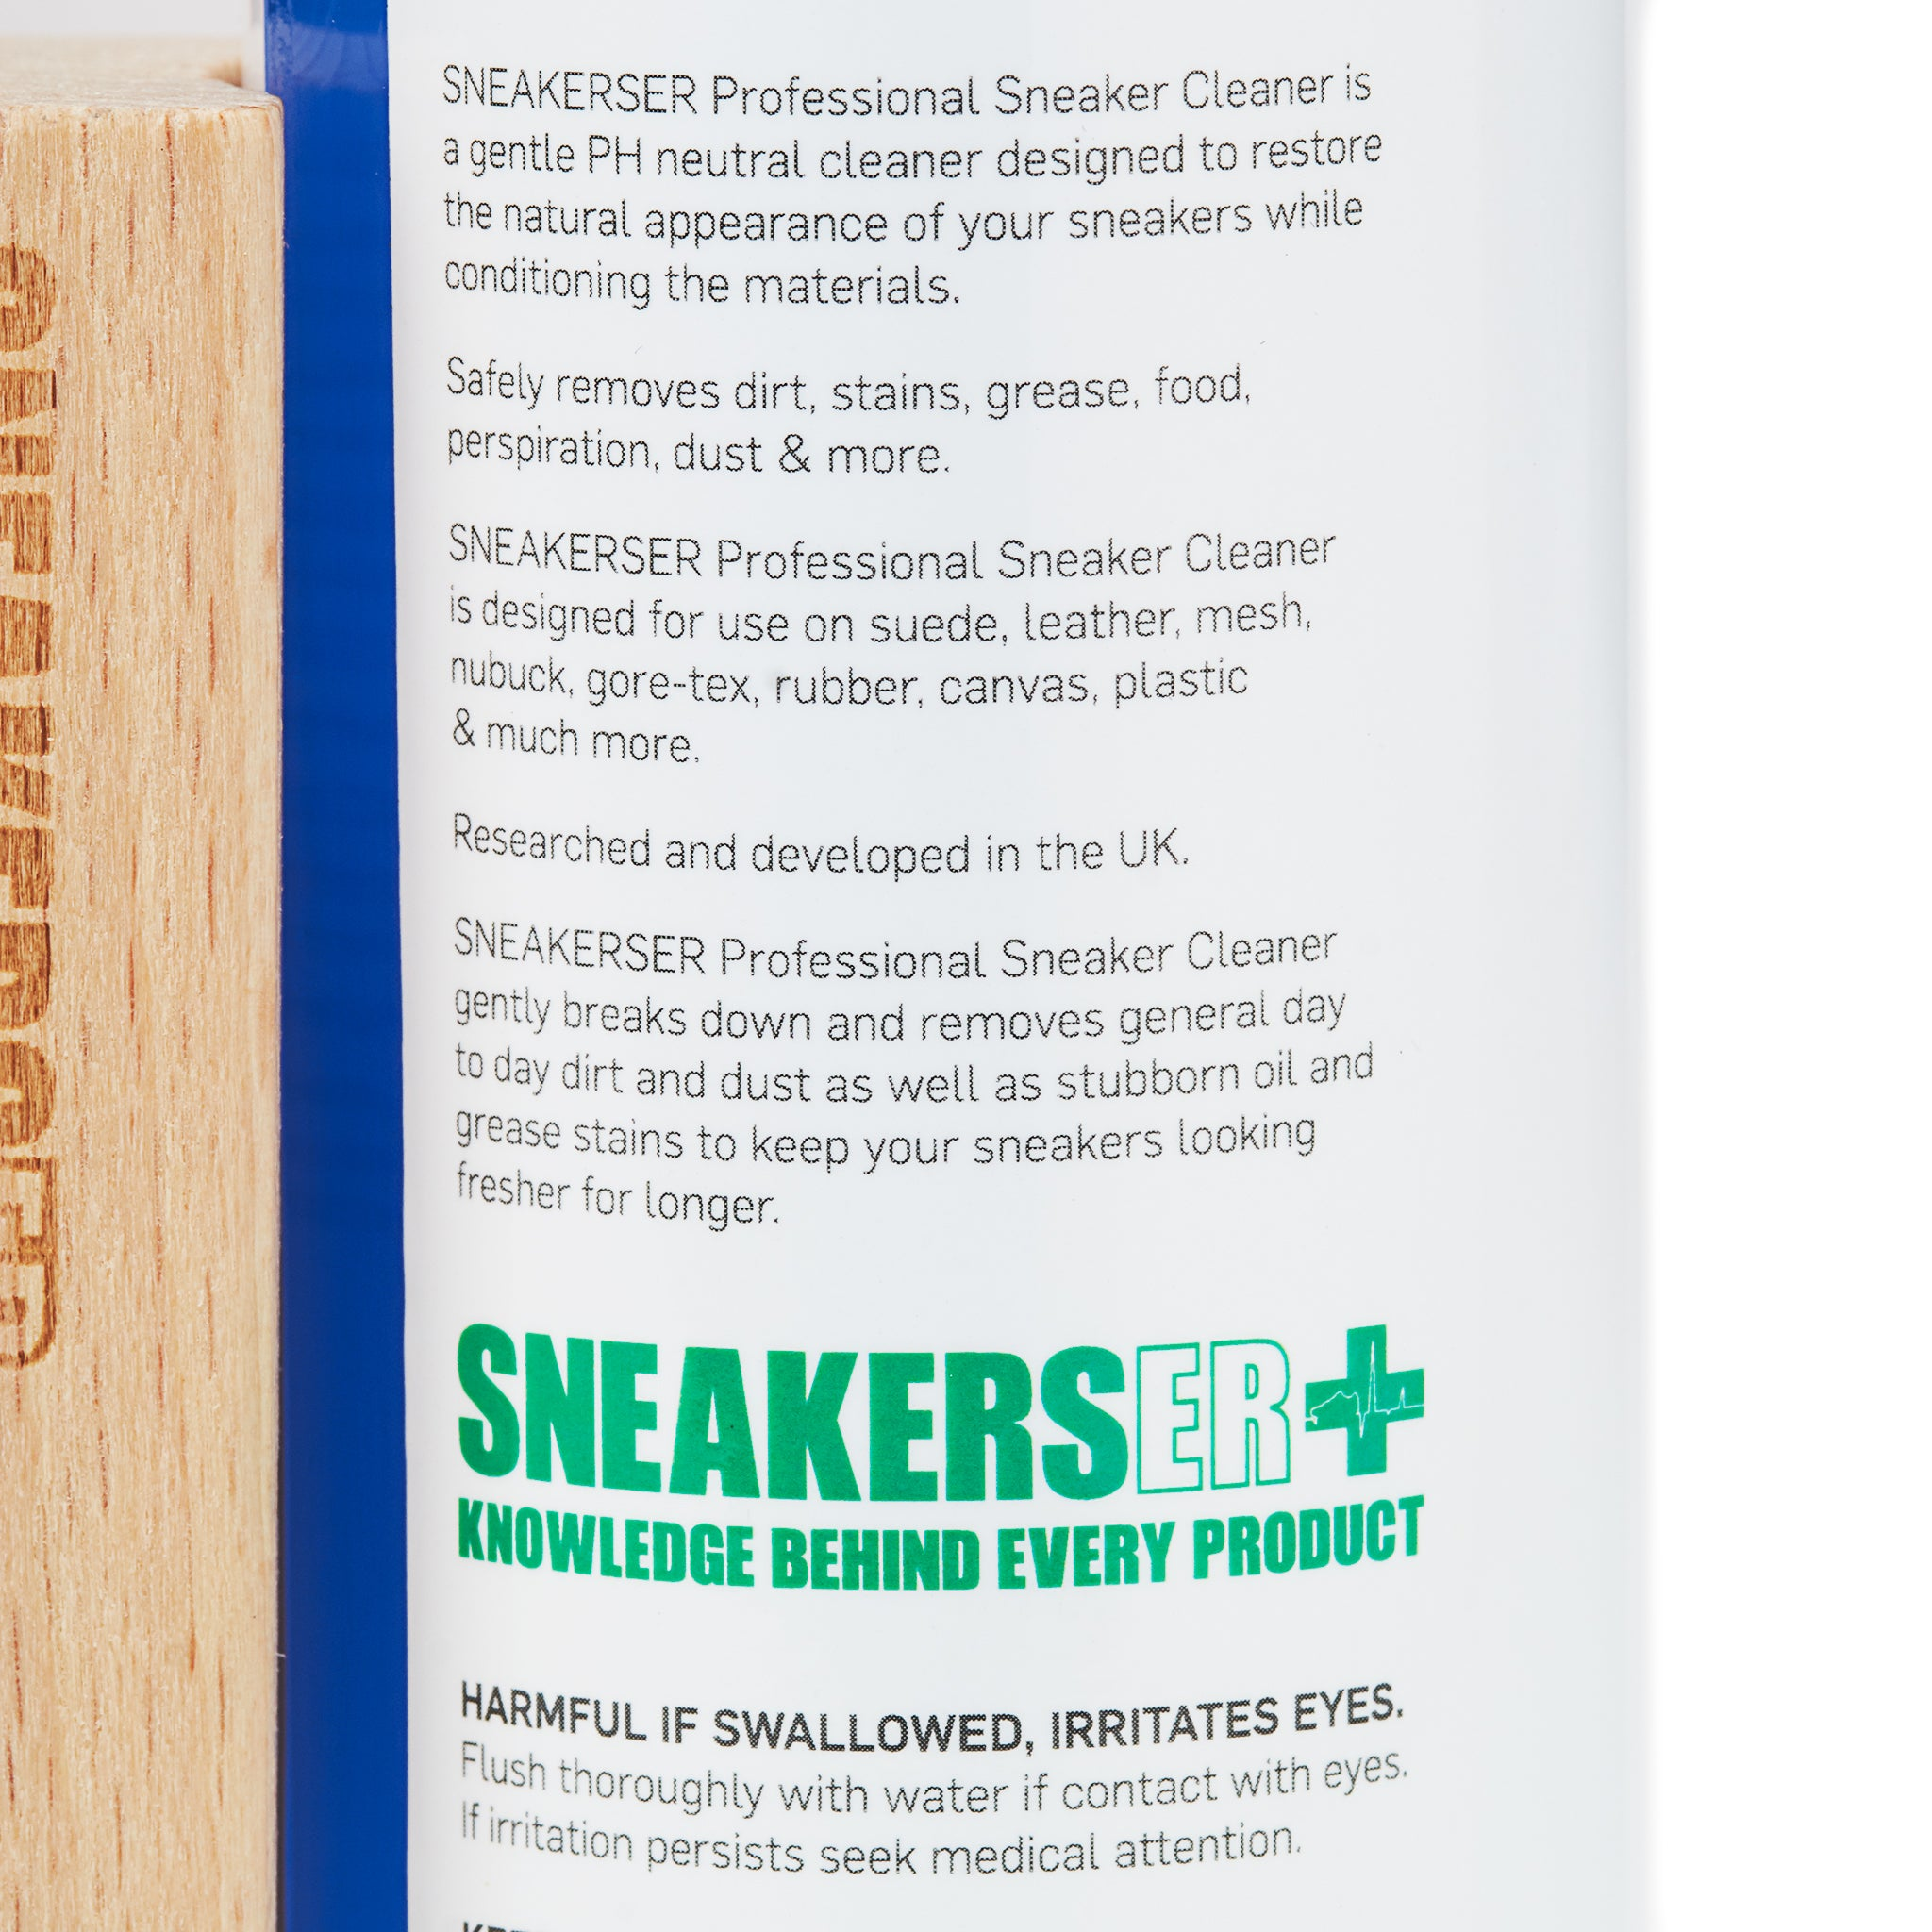 SNEAKERS ER Sneaker Cleaning Kit